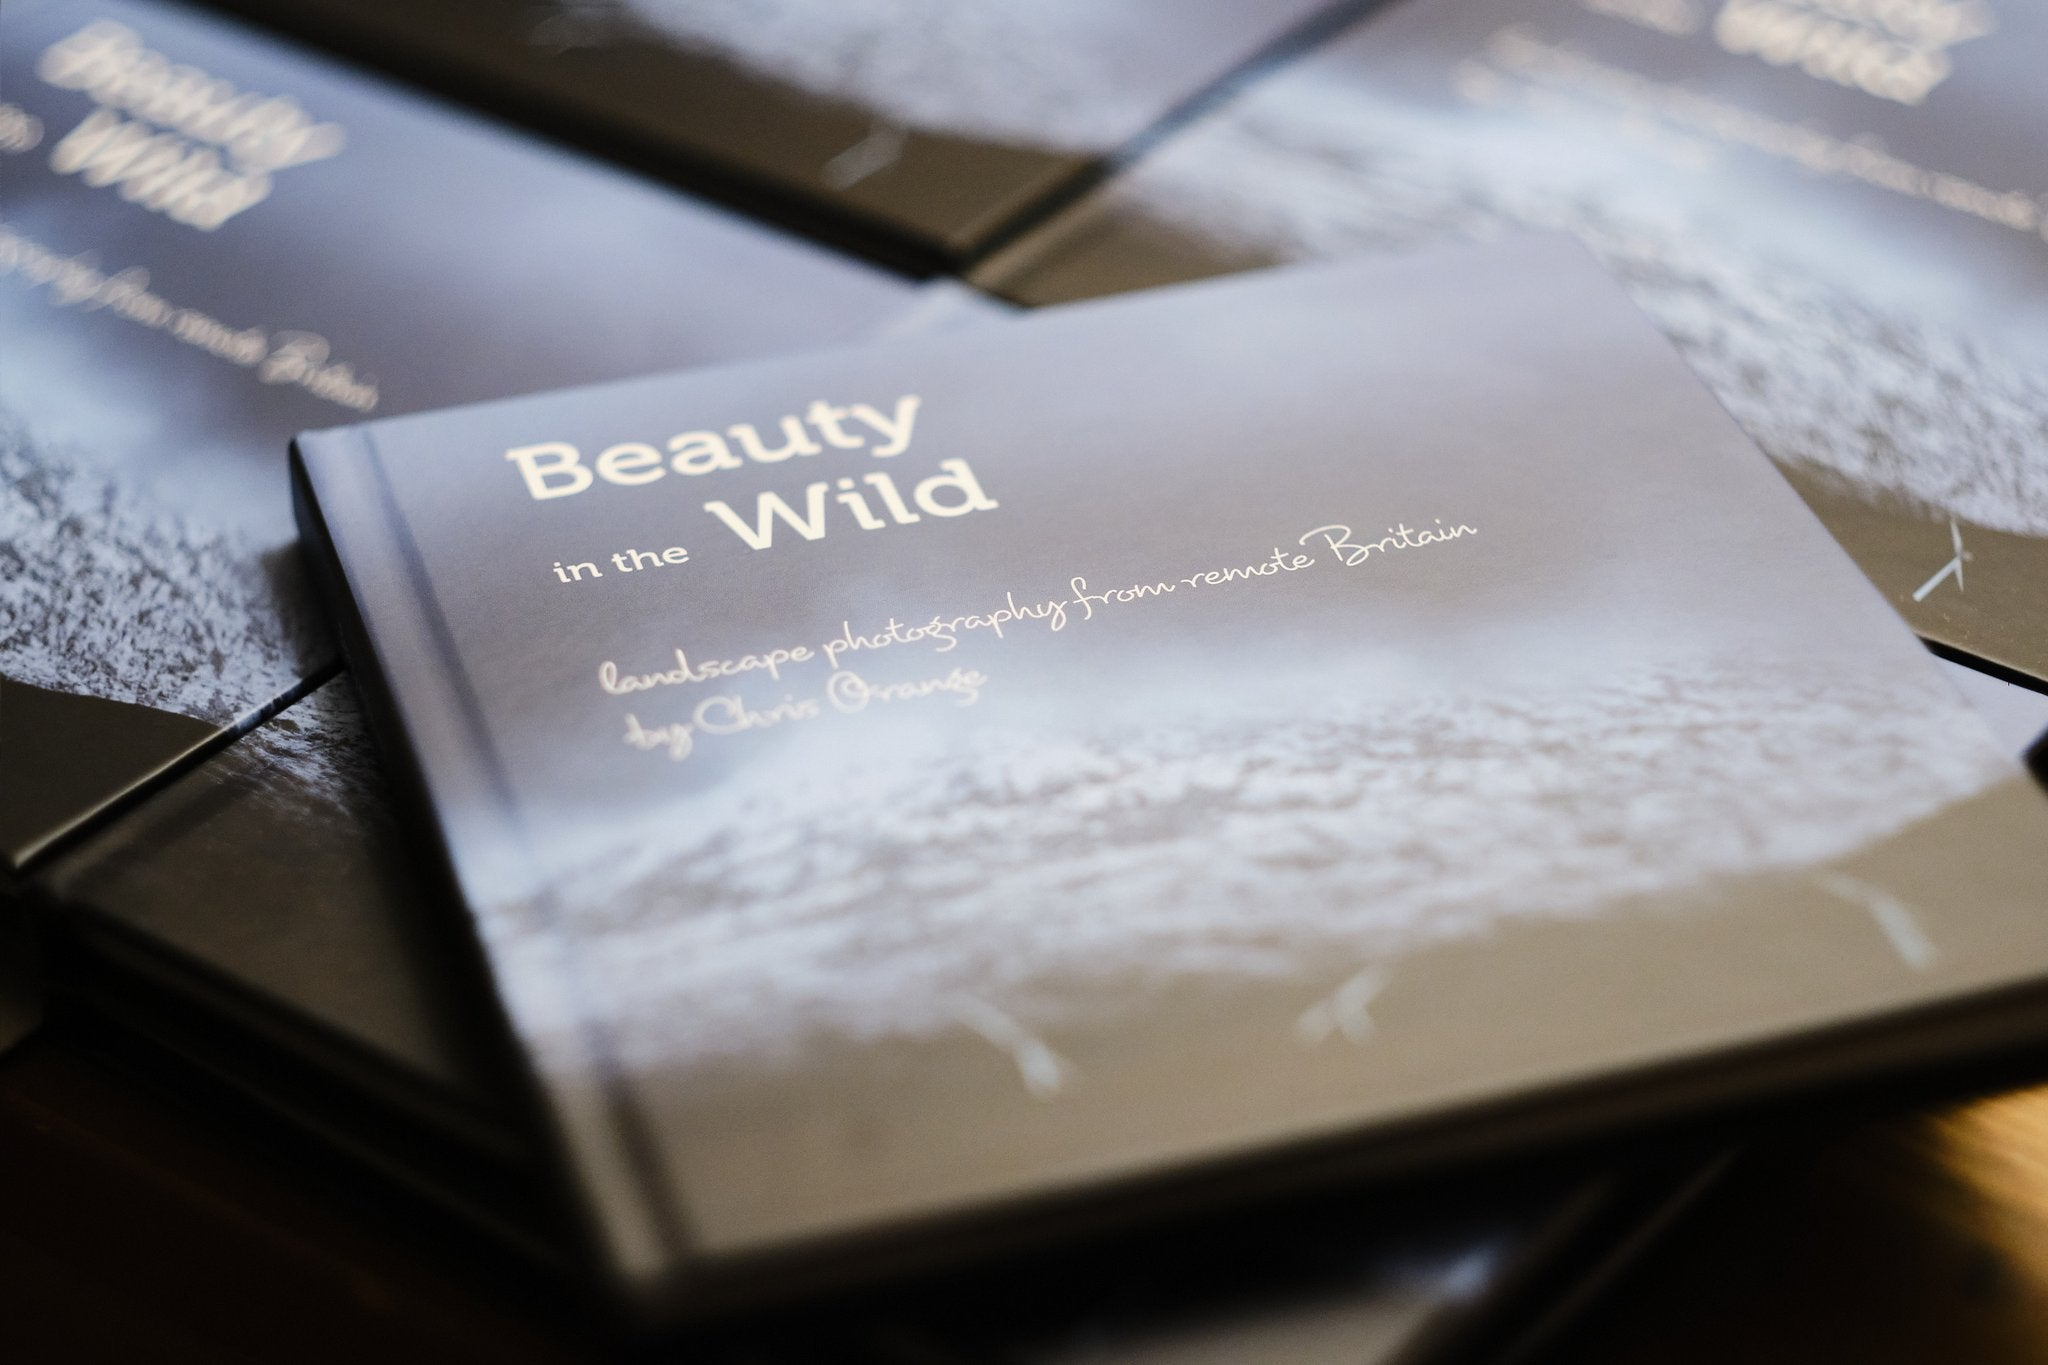 Beauty in the wild (hardback)